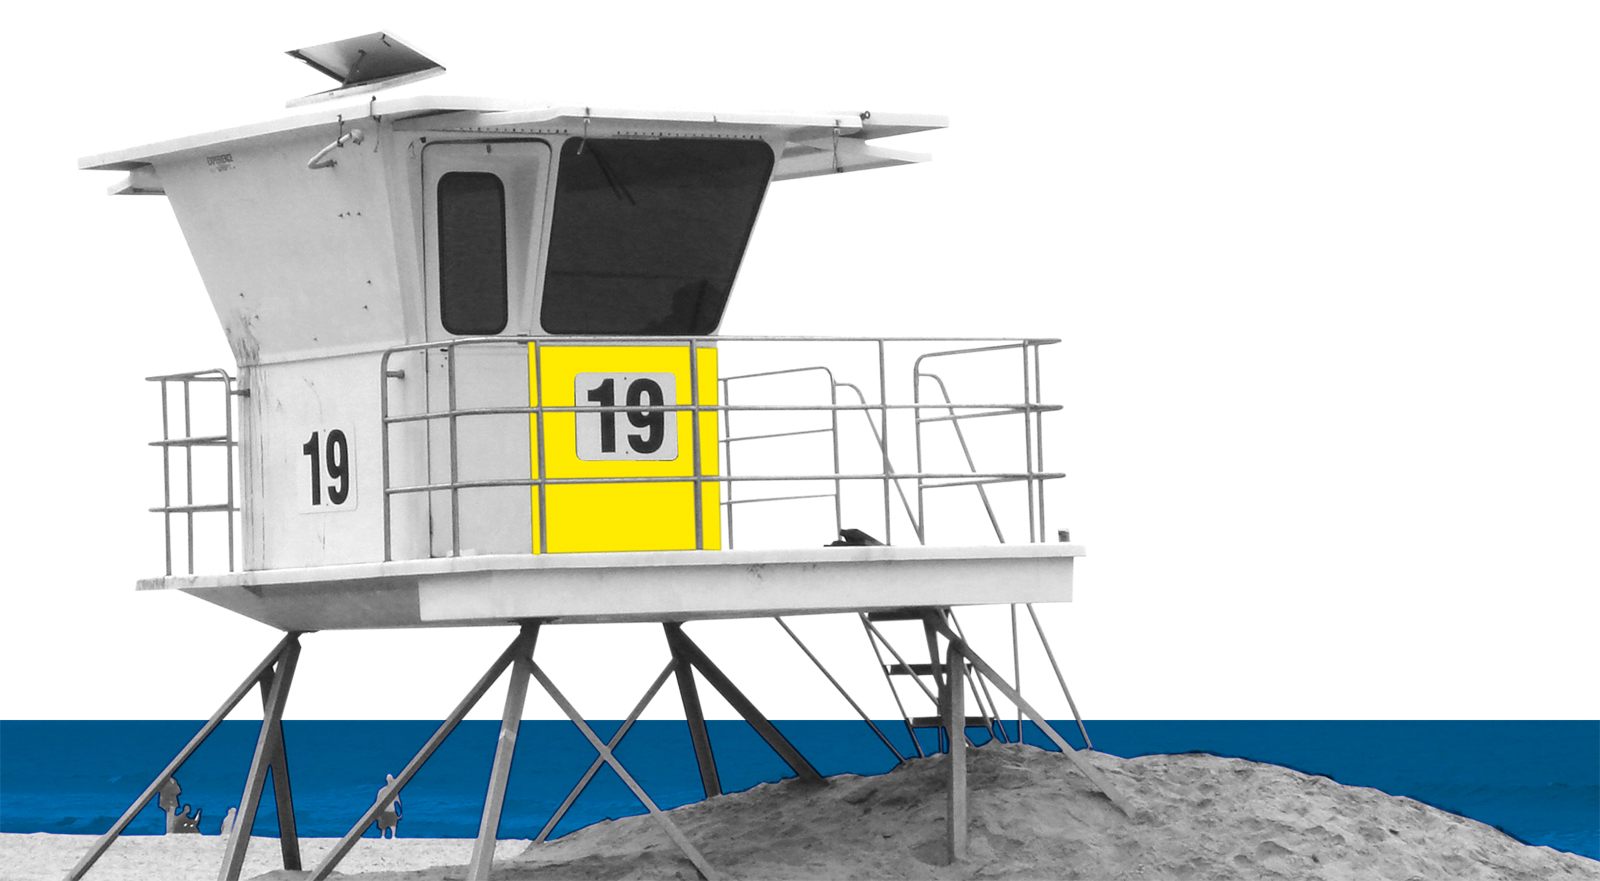 Context image of the local Mission Beach lifeguard tower as an inspiration for the materiality of the QTCT project